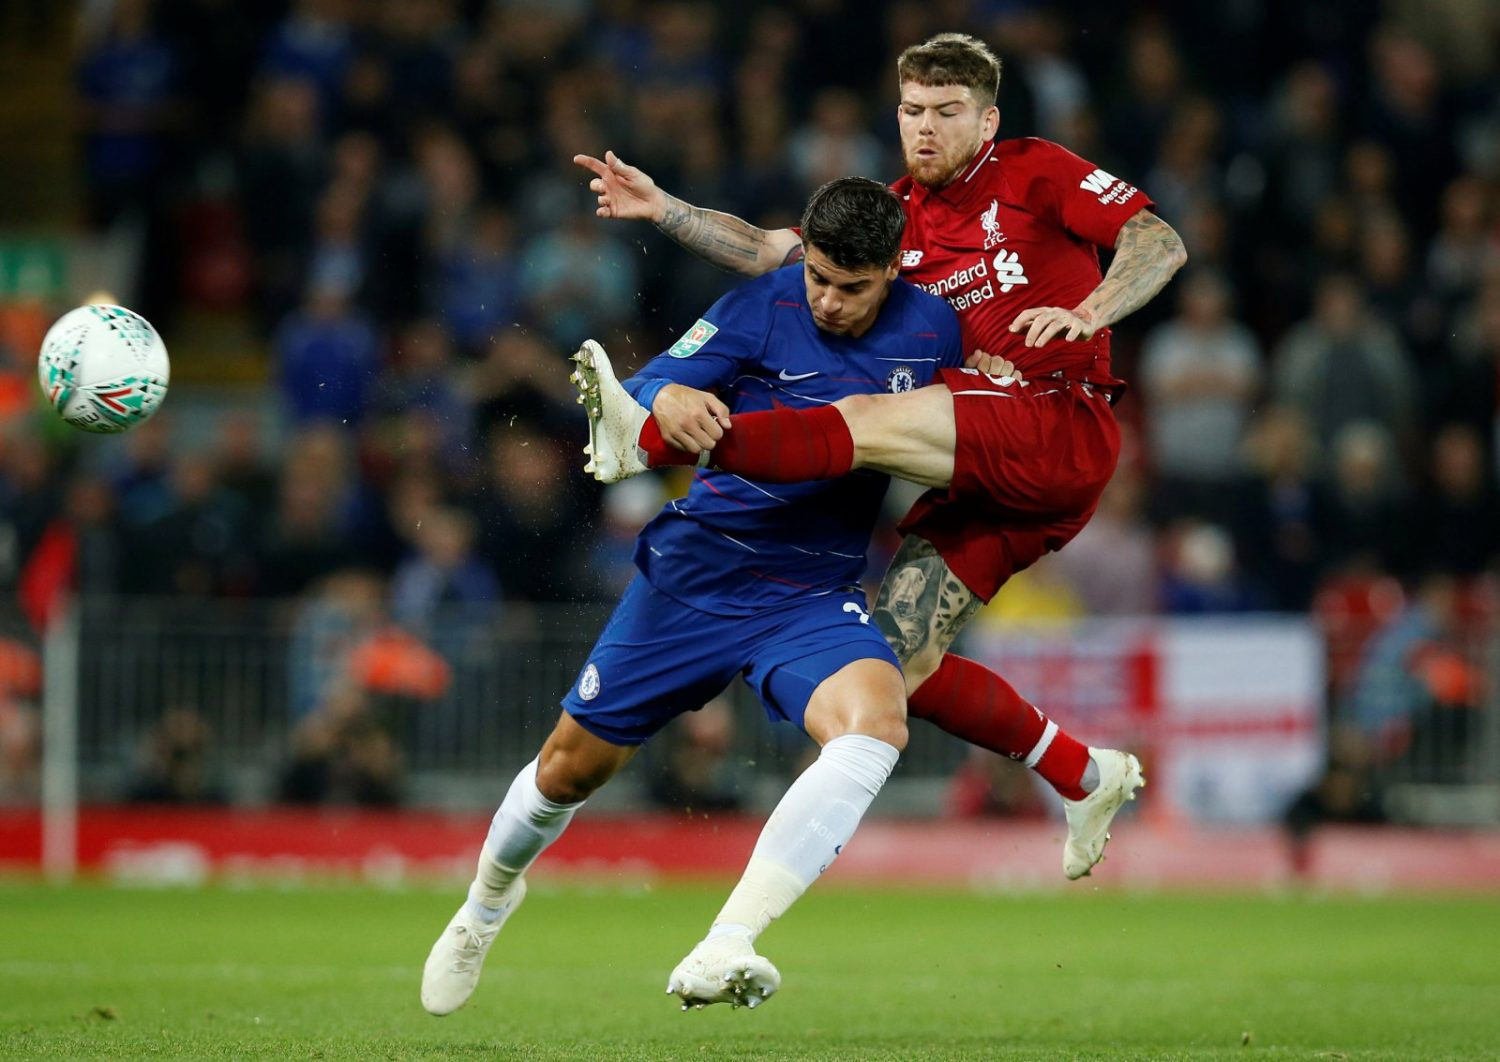 Alberto Moreno set to end disappointing five-year spell on Merseyside this summer